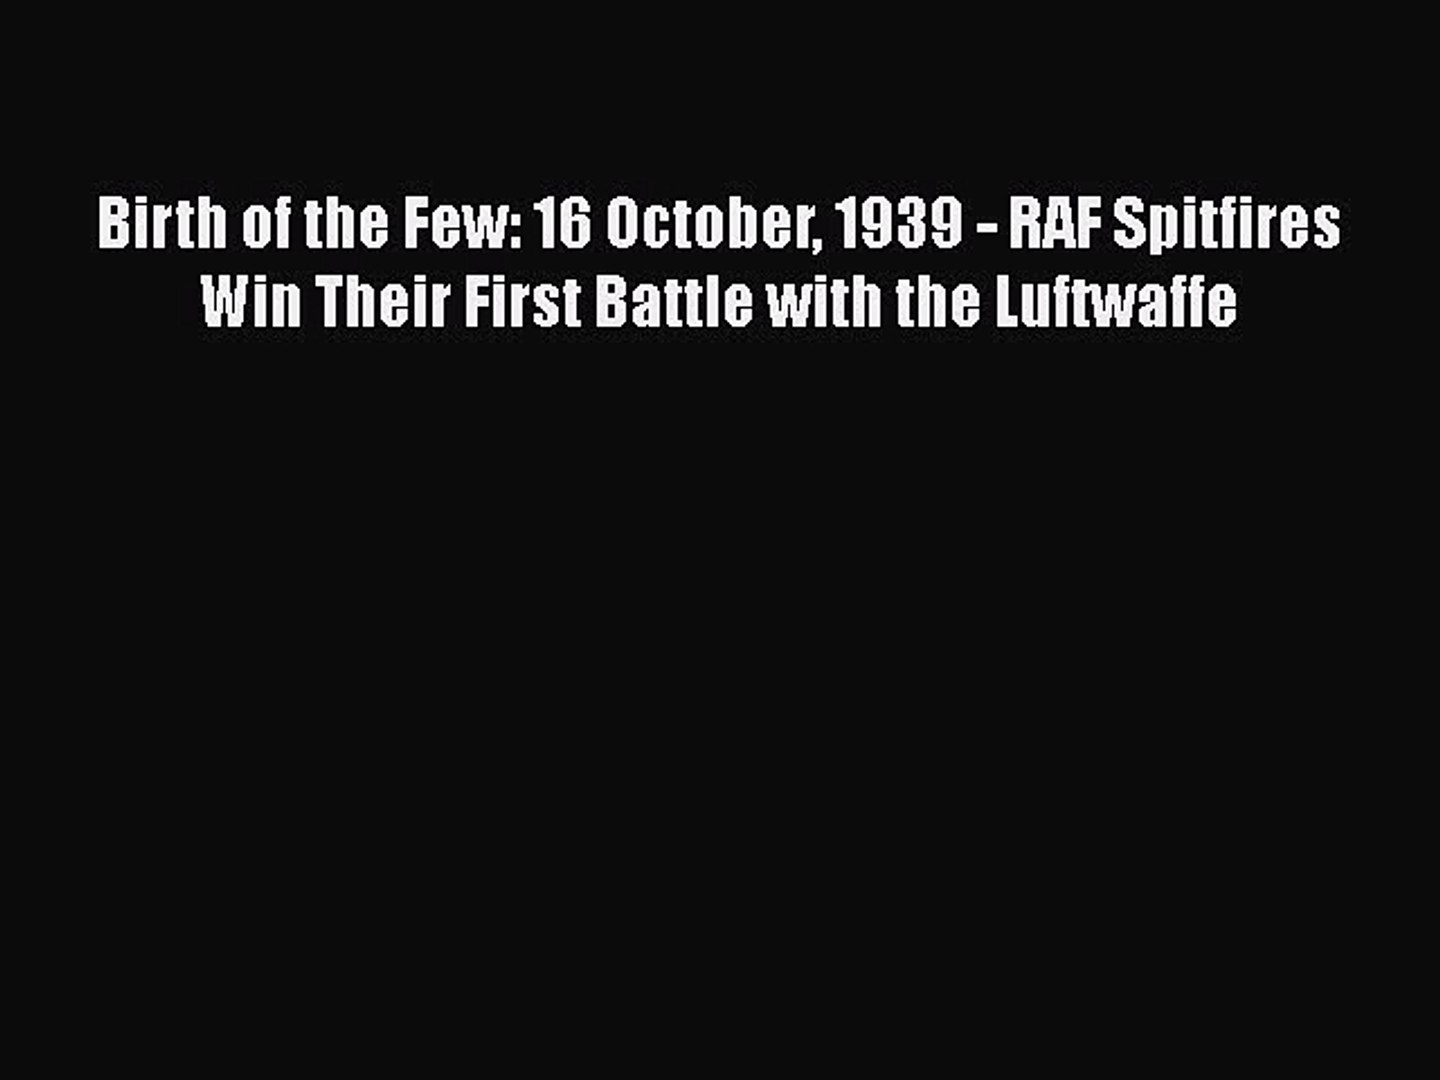 Read Birth of the Few: 16 October 1939 - RAF Spitfires Win Their First Battle with the Luftwaffe